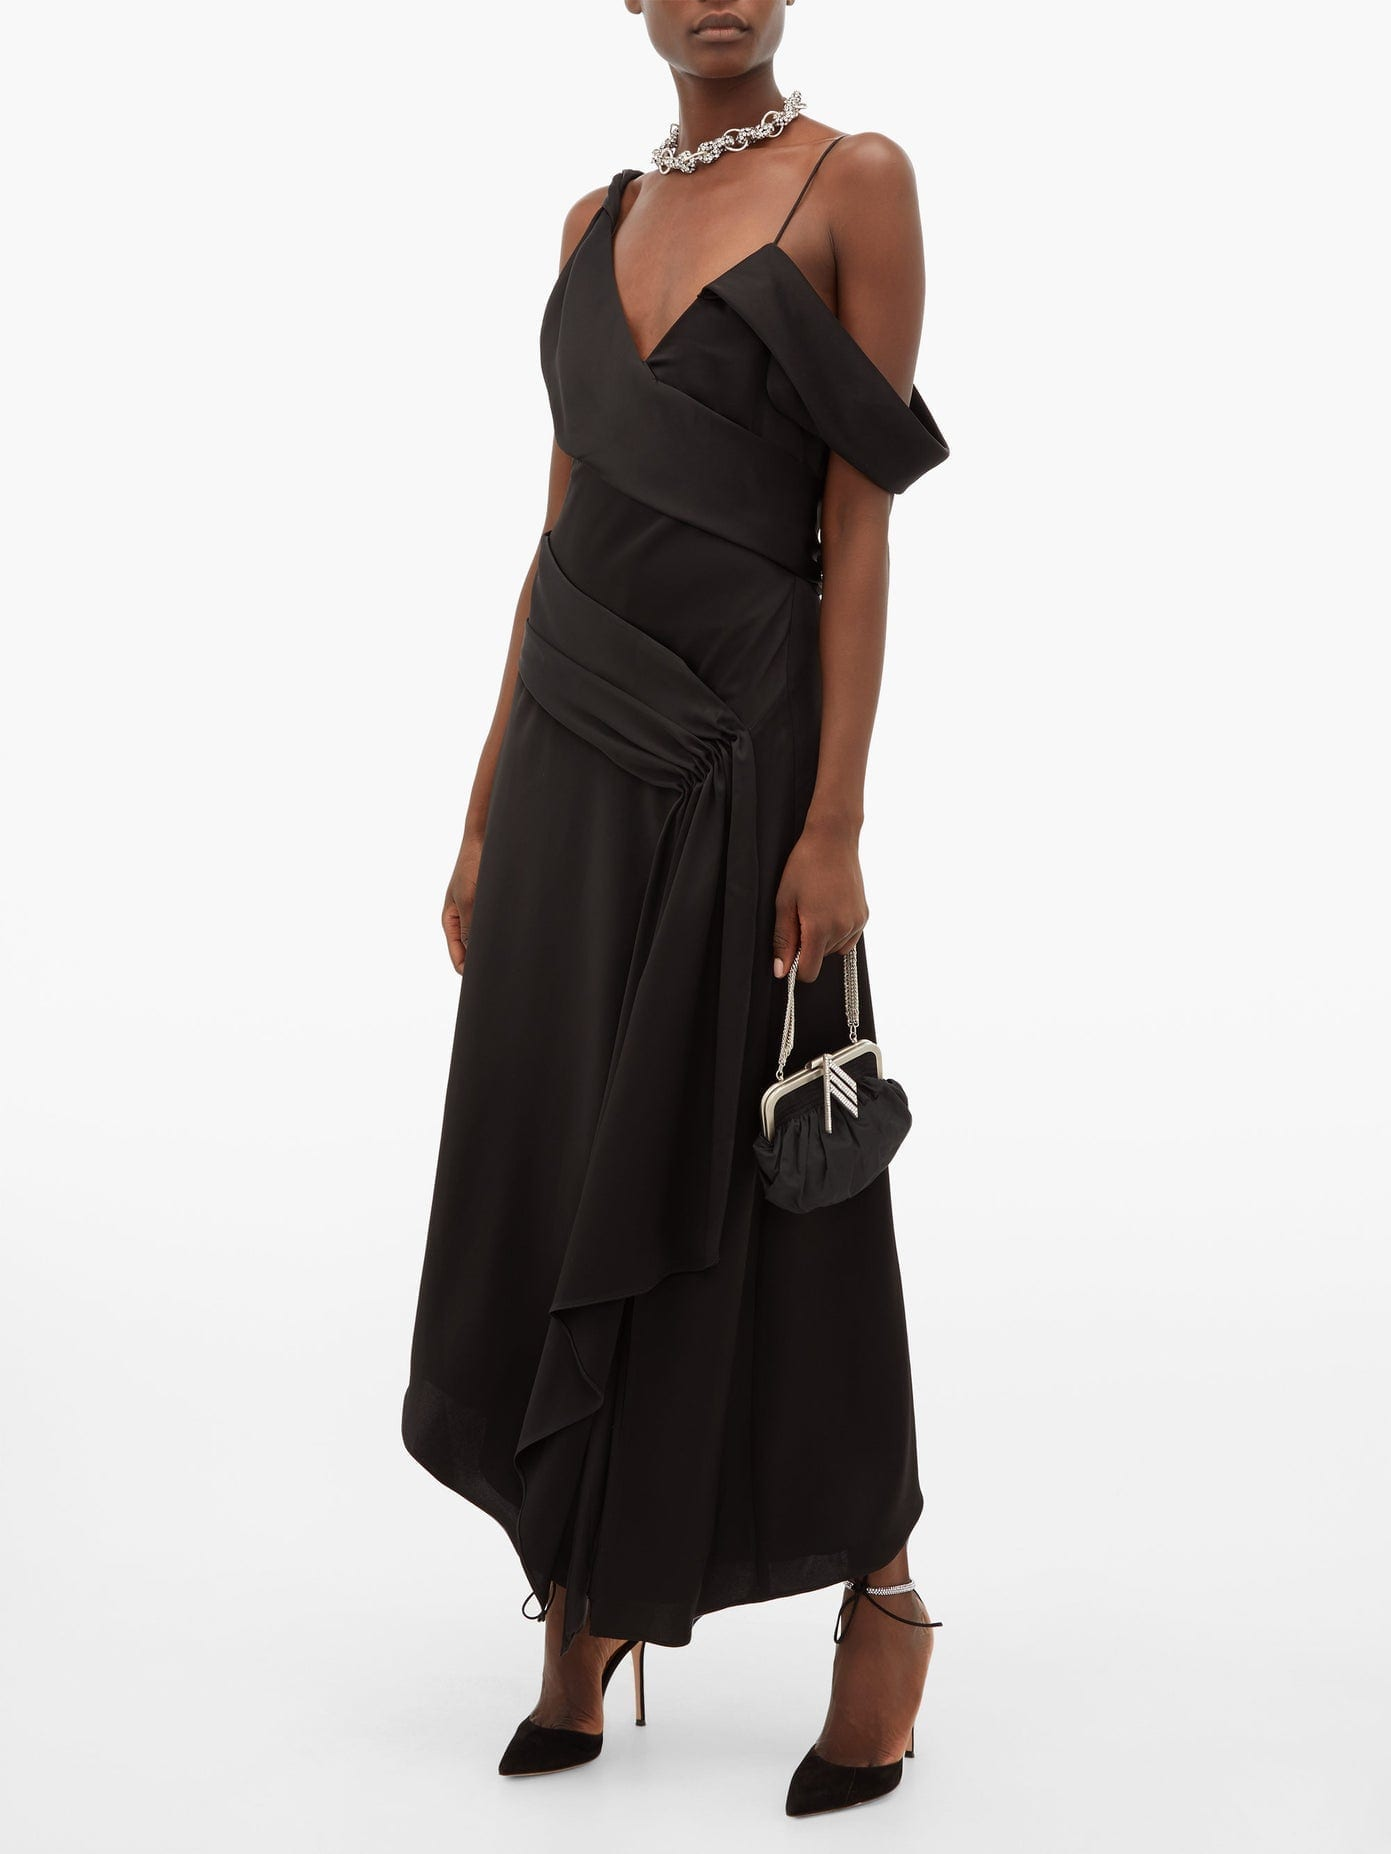 JONATHAN SIMKHAI Satin Asymmetric Draped Midi Dress